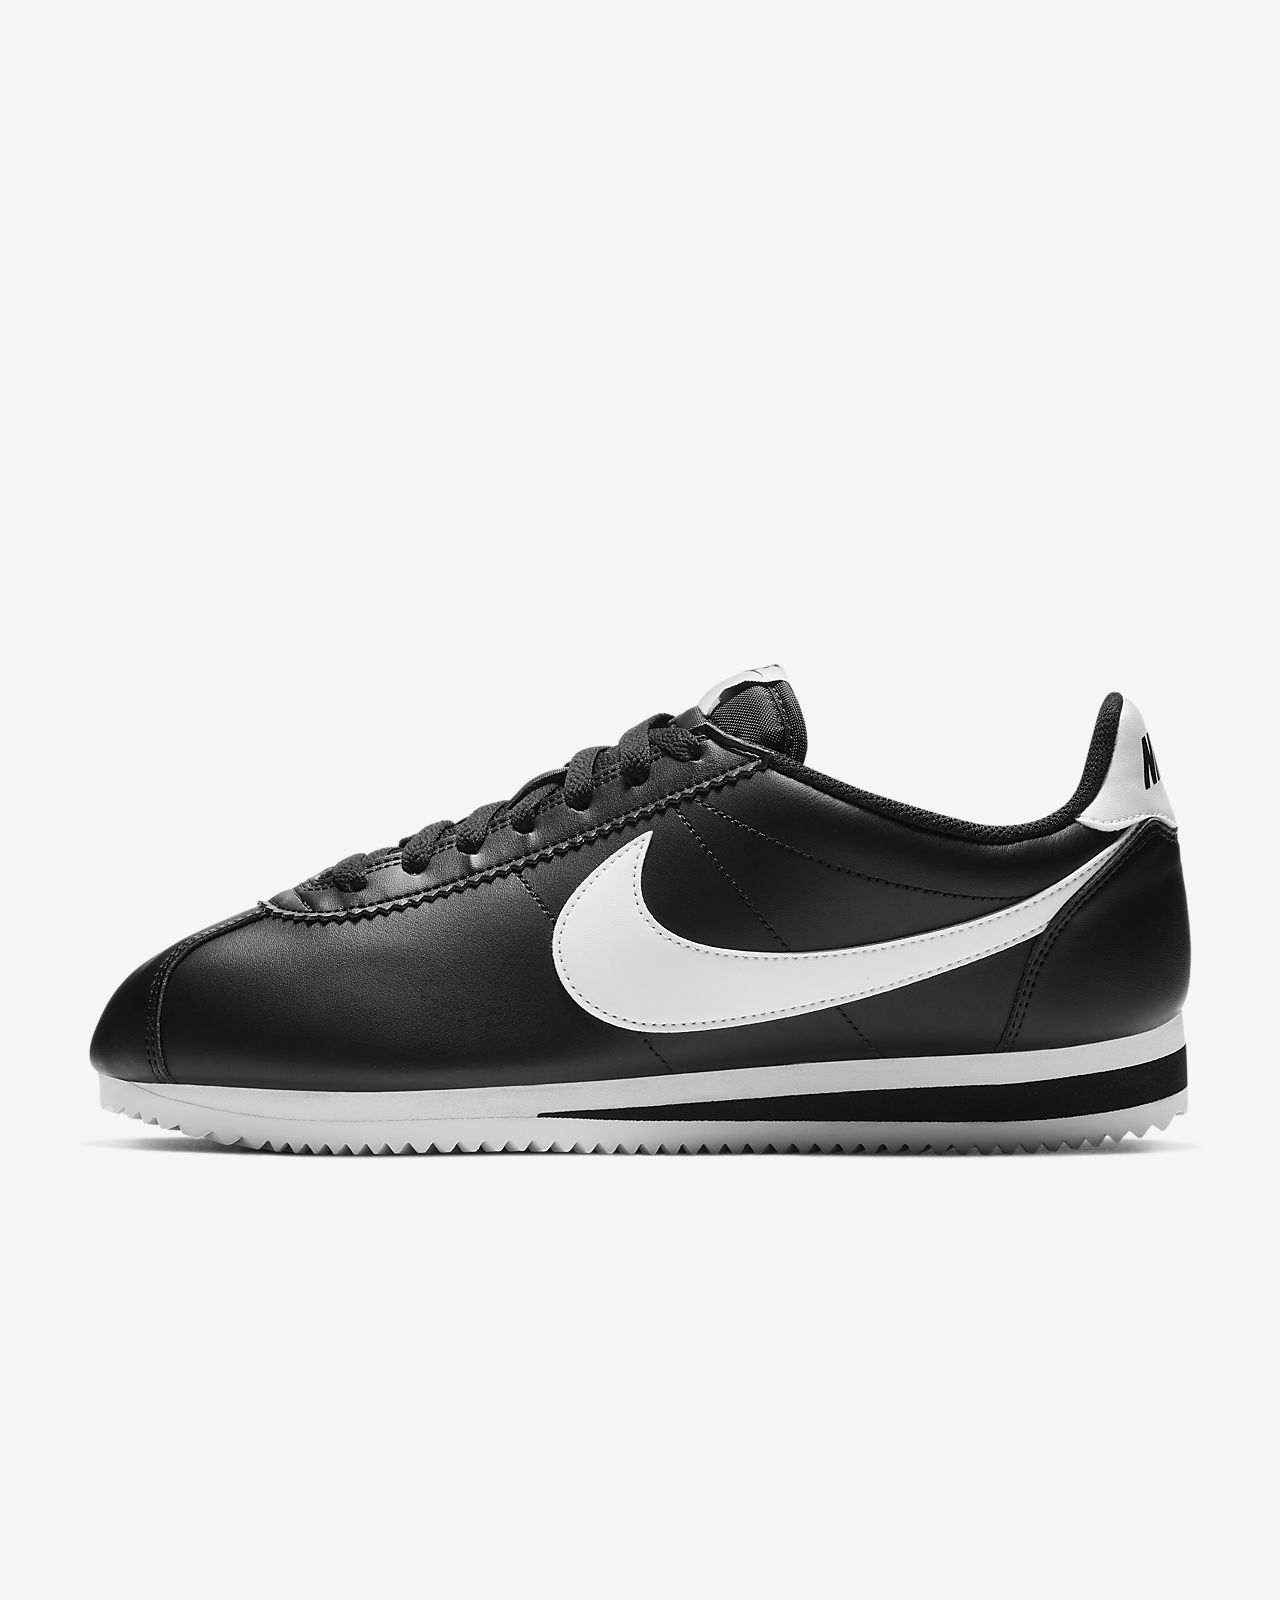 the latest 39fcd 28f18 ... Nike Classic Cortez Womens Shoe